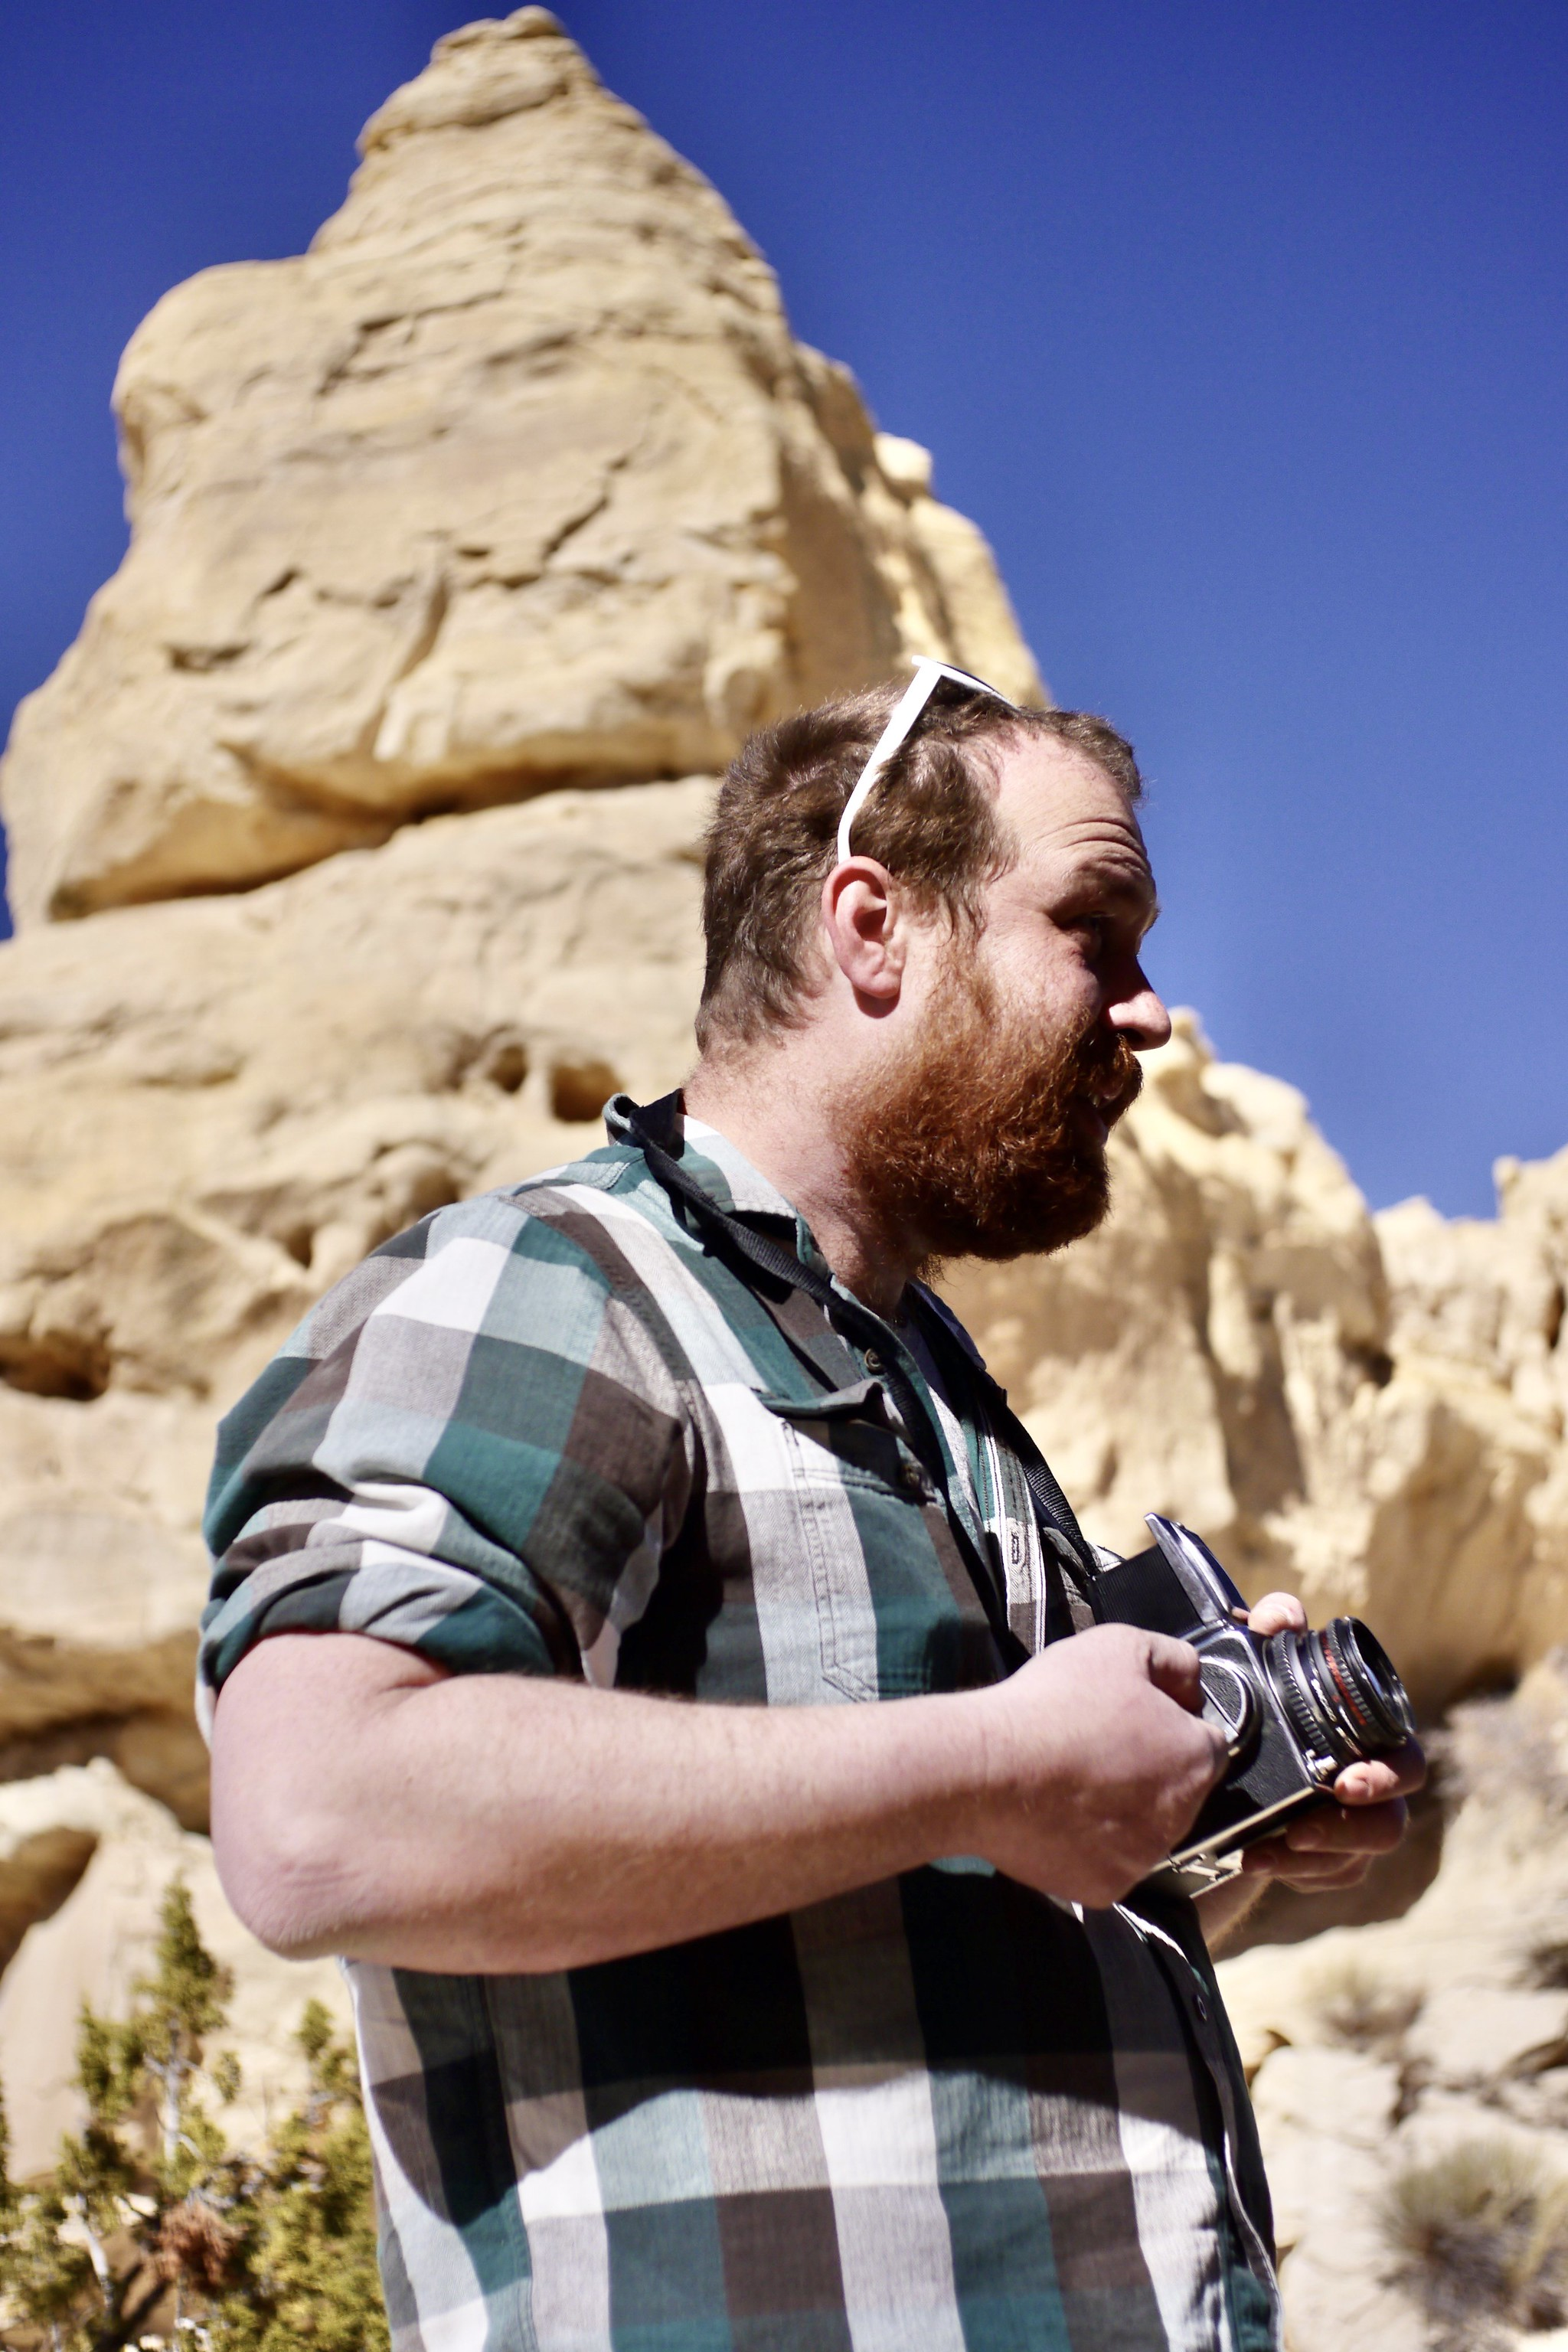 Ethan & Hasselblad at Ojito Wilderness